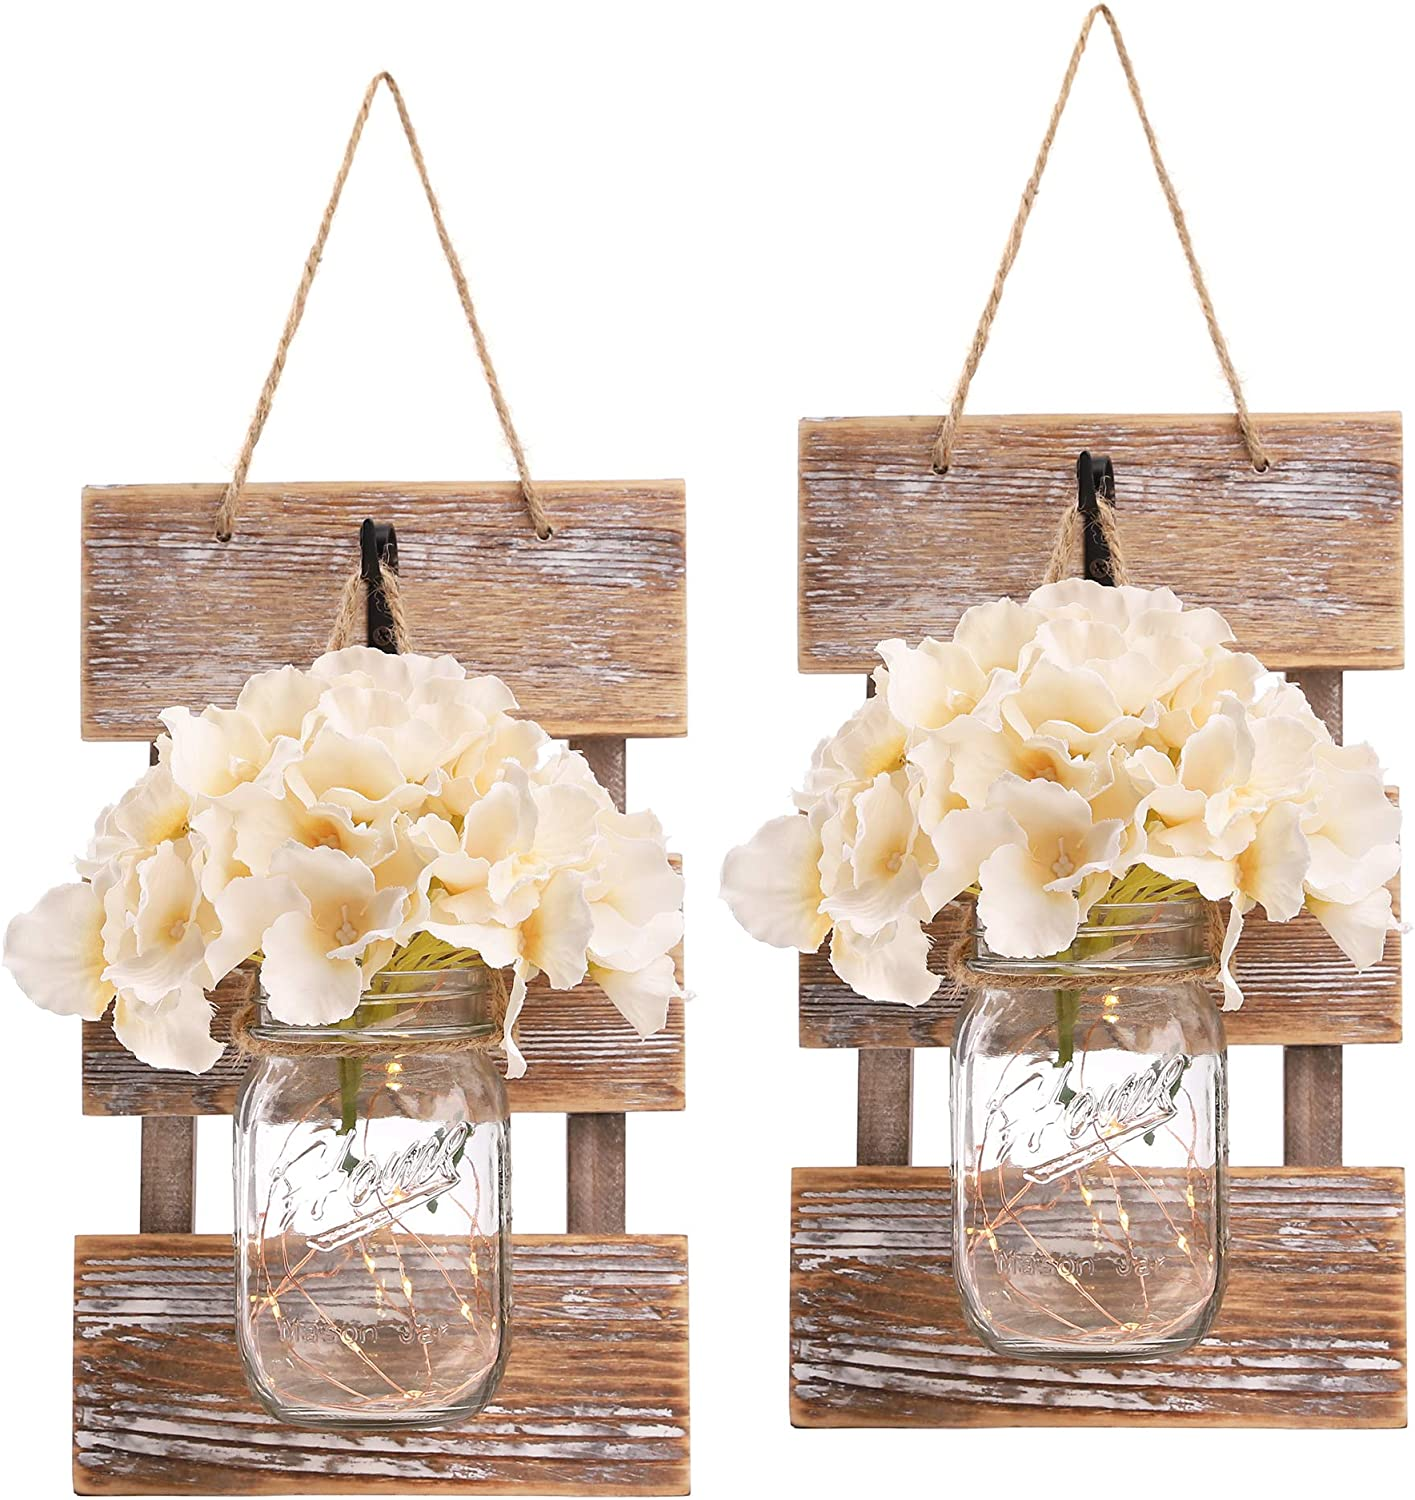 HOMKO Mason Jar Wall Decor with LED Fairy Lights and Flowers - Farmhouse Home Decor (Set of 2)